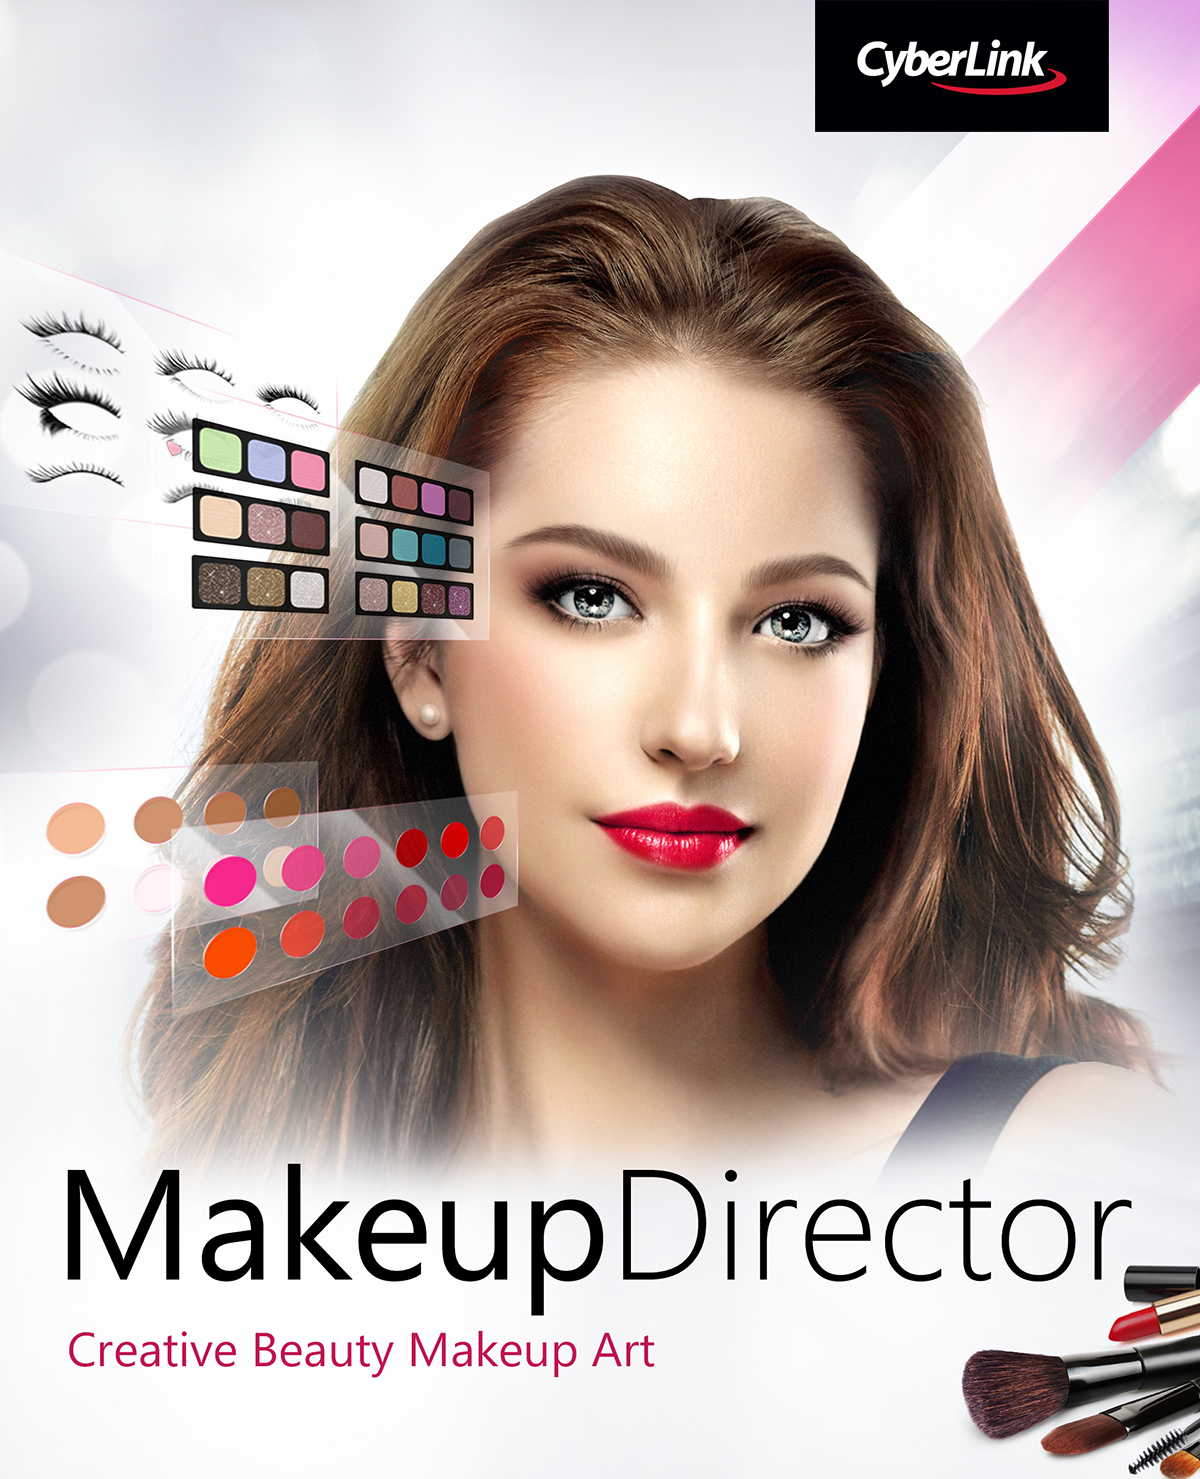 CyberLink MakeupDirector [Download] by Cyberlink